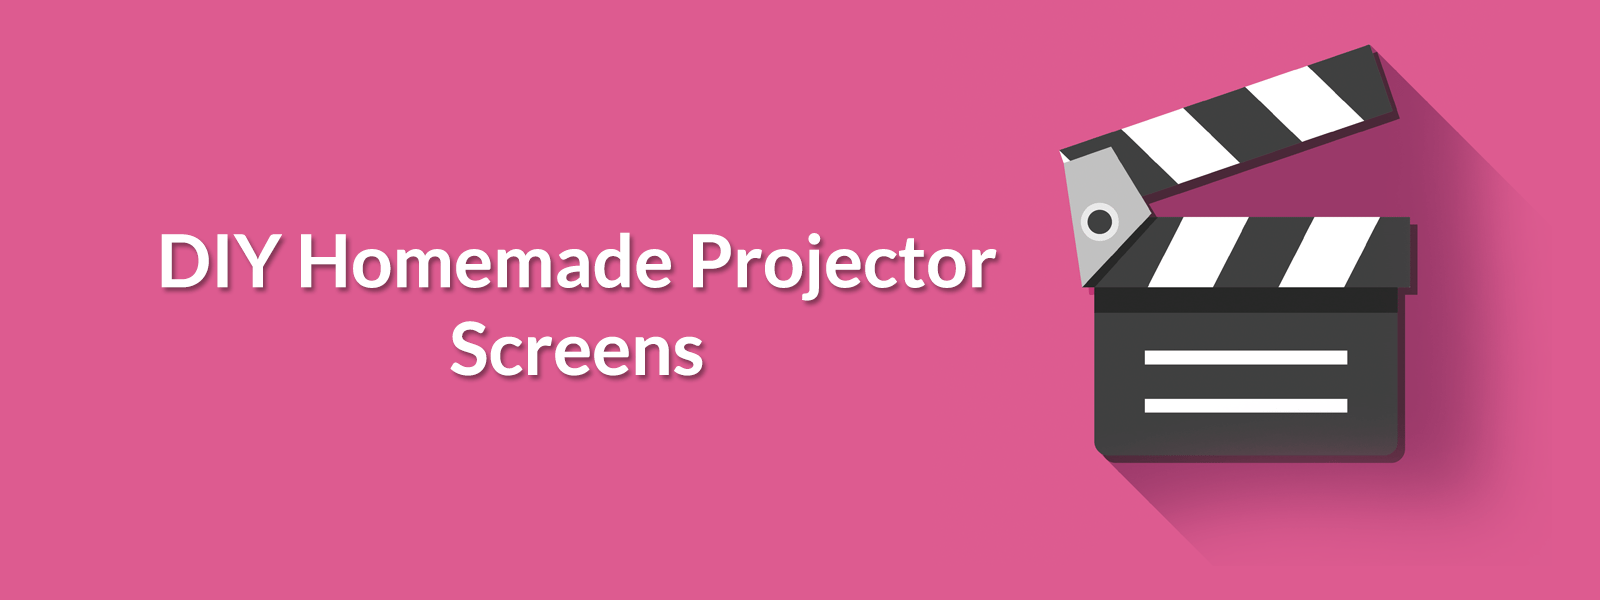 DIY Homemade Projector Screens